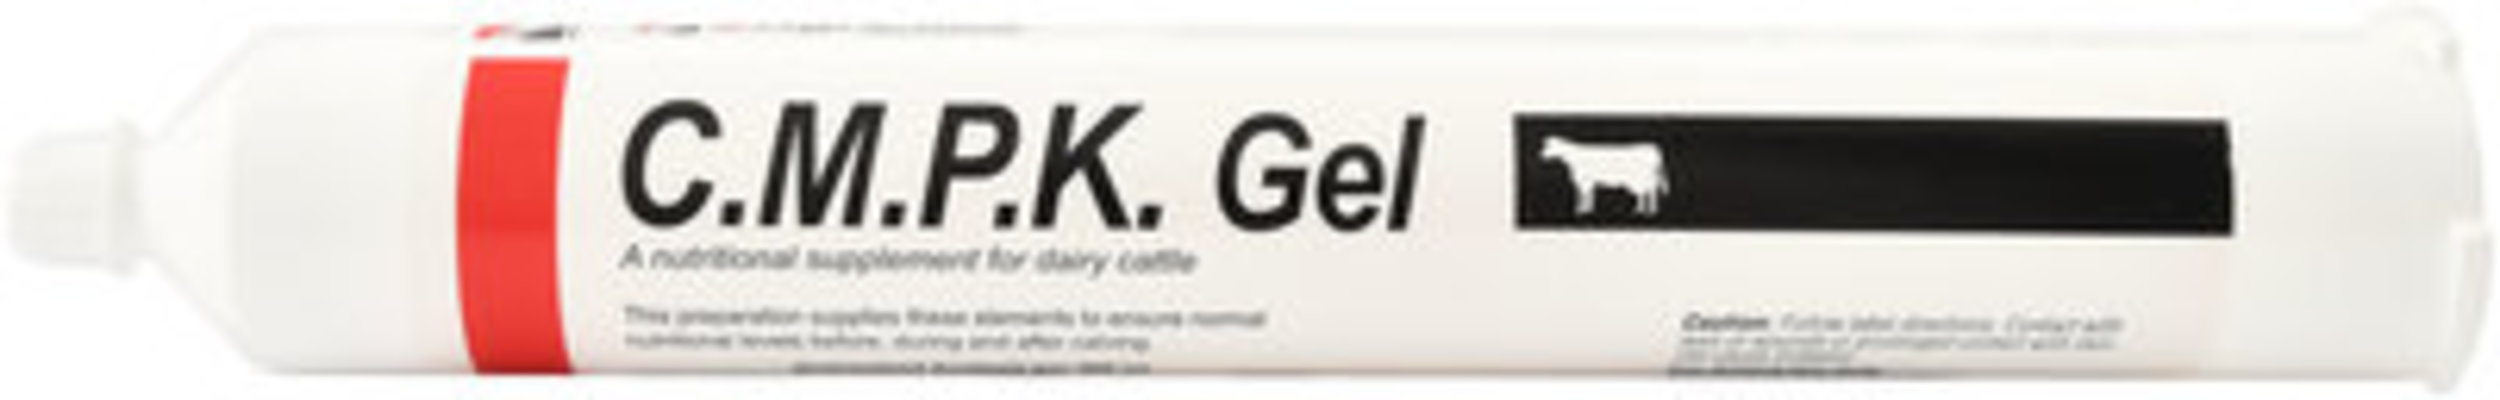 C.M.P.K. Gel, 300 mL tube